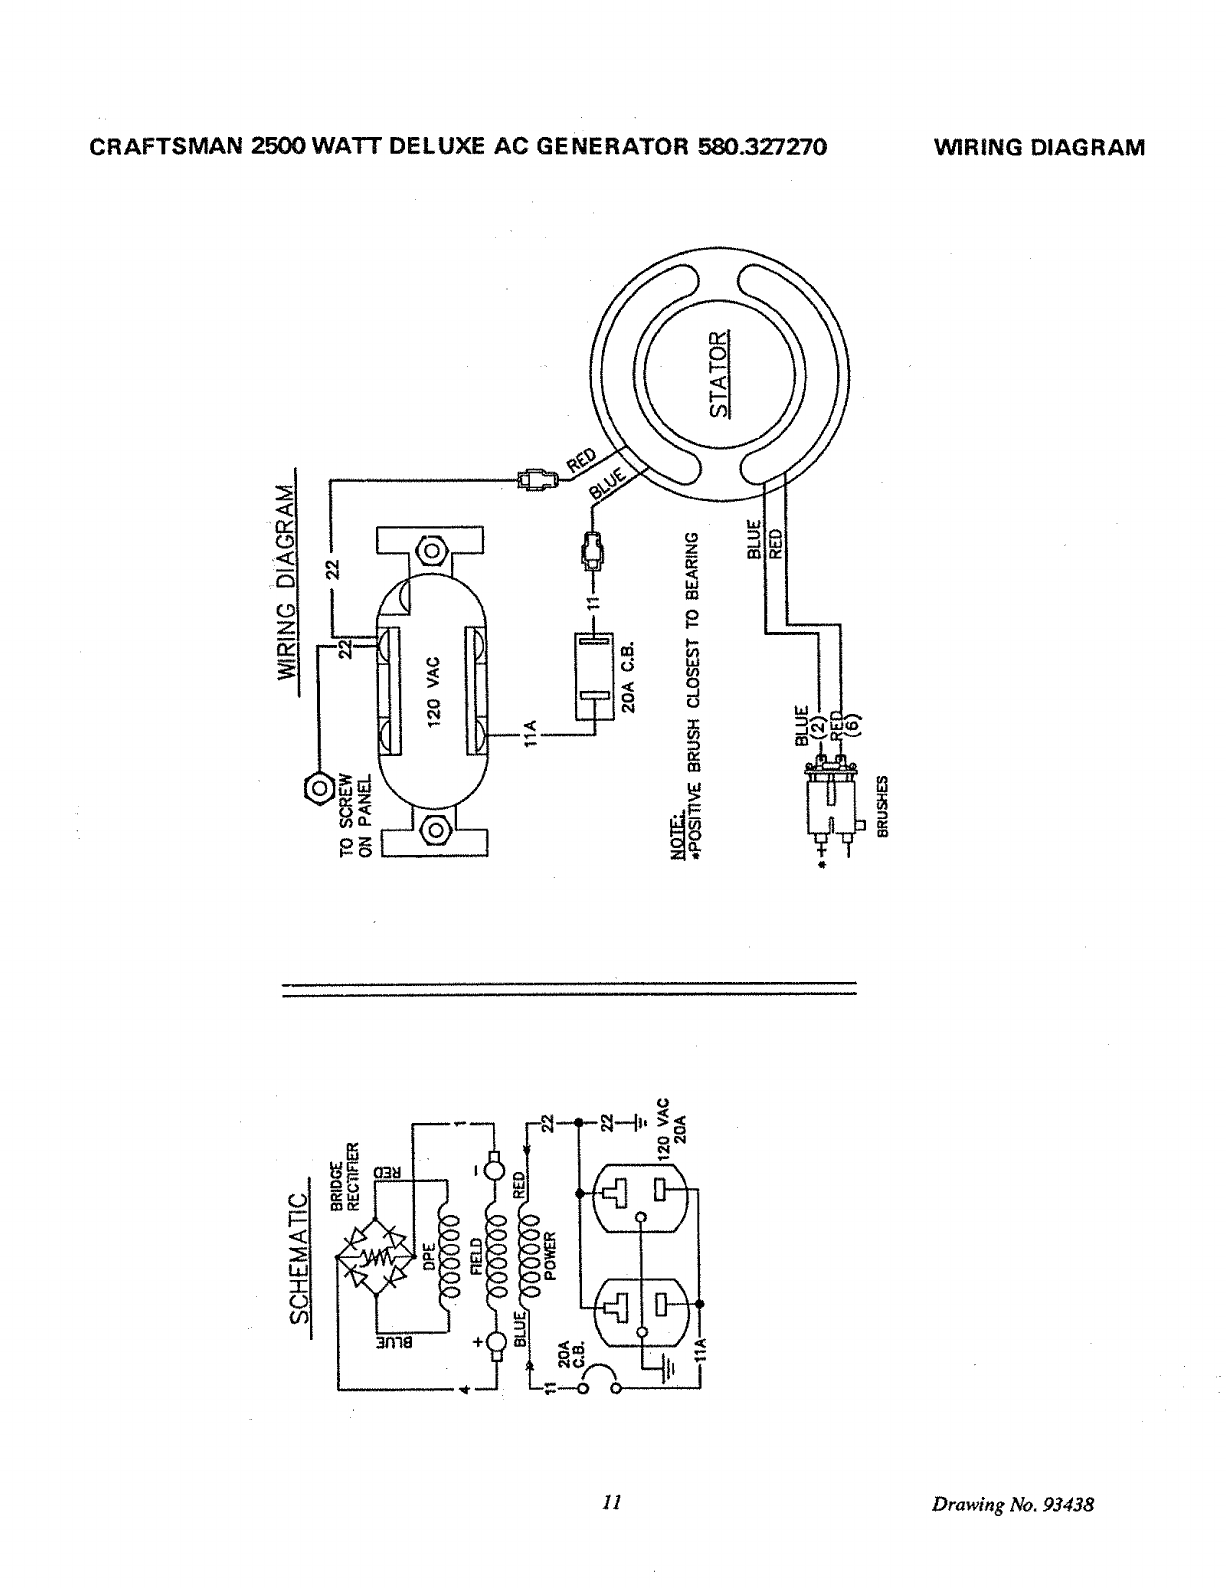 5b713769 86b8 49c3 a294 30c97cfb9ace bgd page 13 of craftsman portable generator 580 32727 user guide portable generator wiring schematic at aneh.co